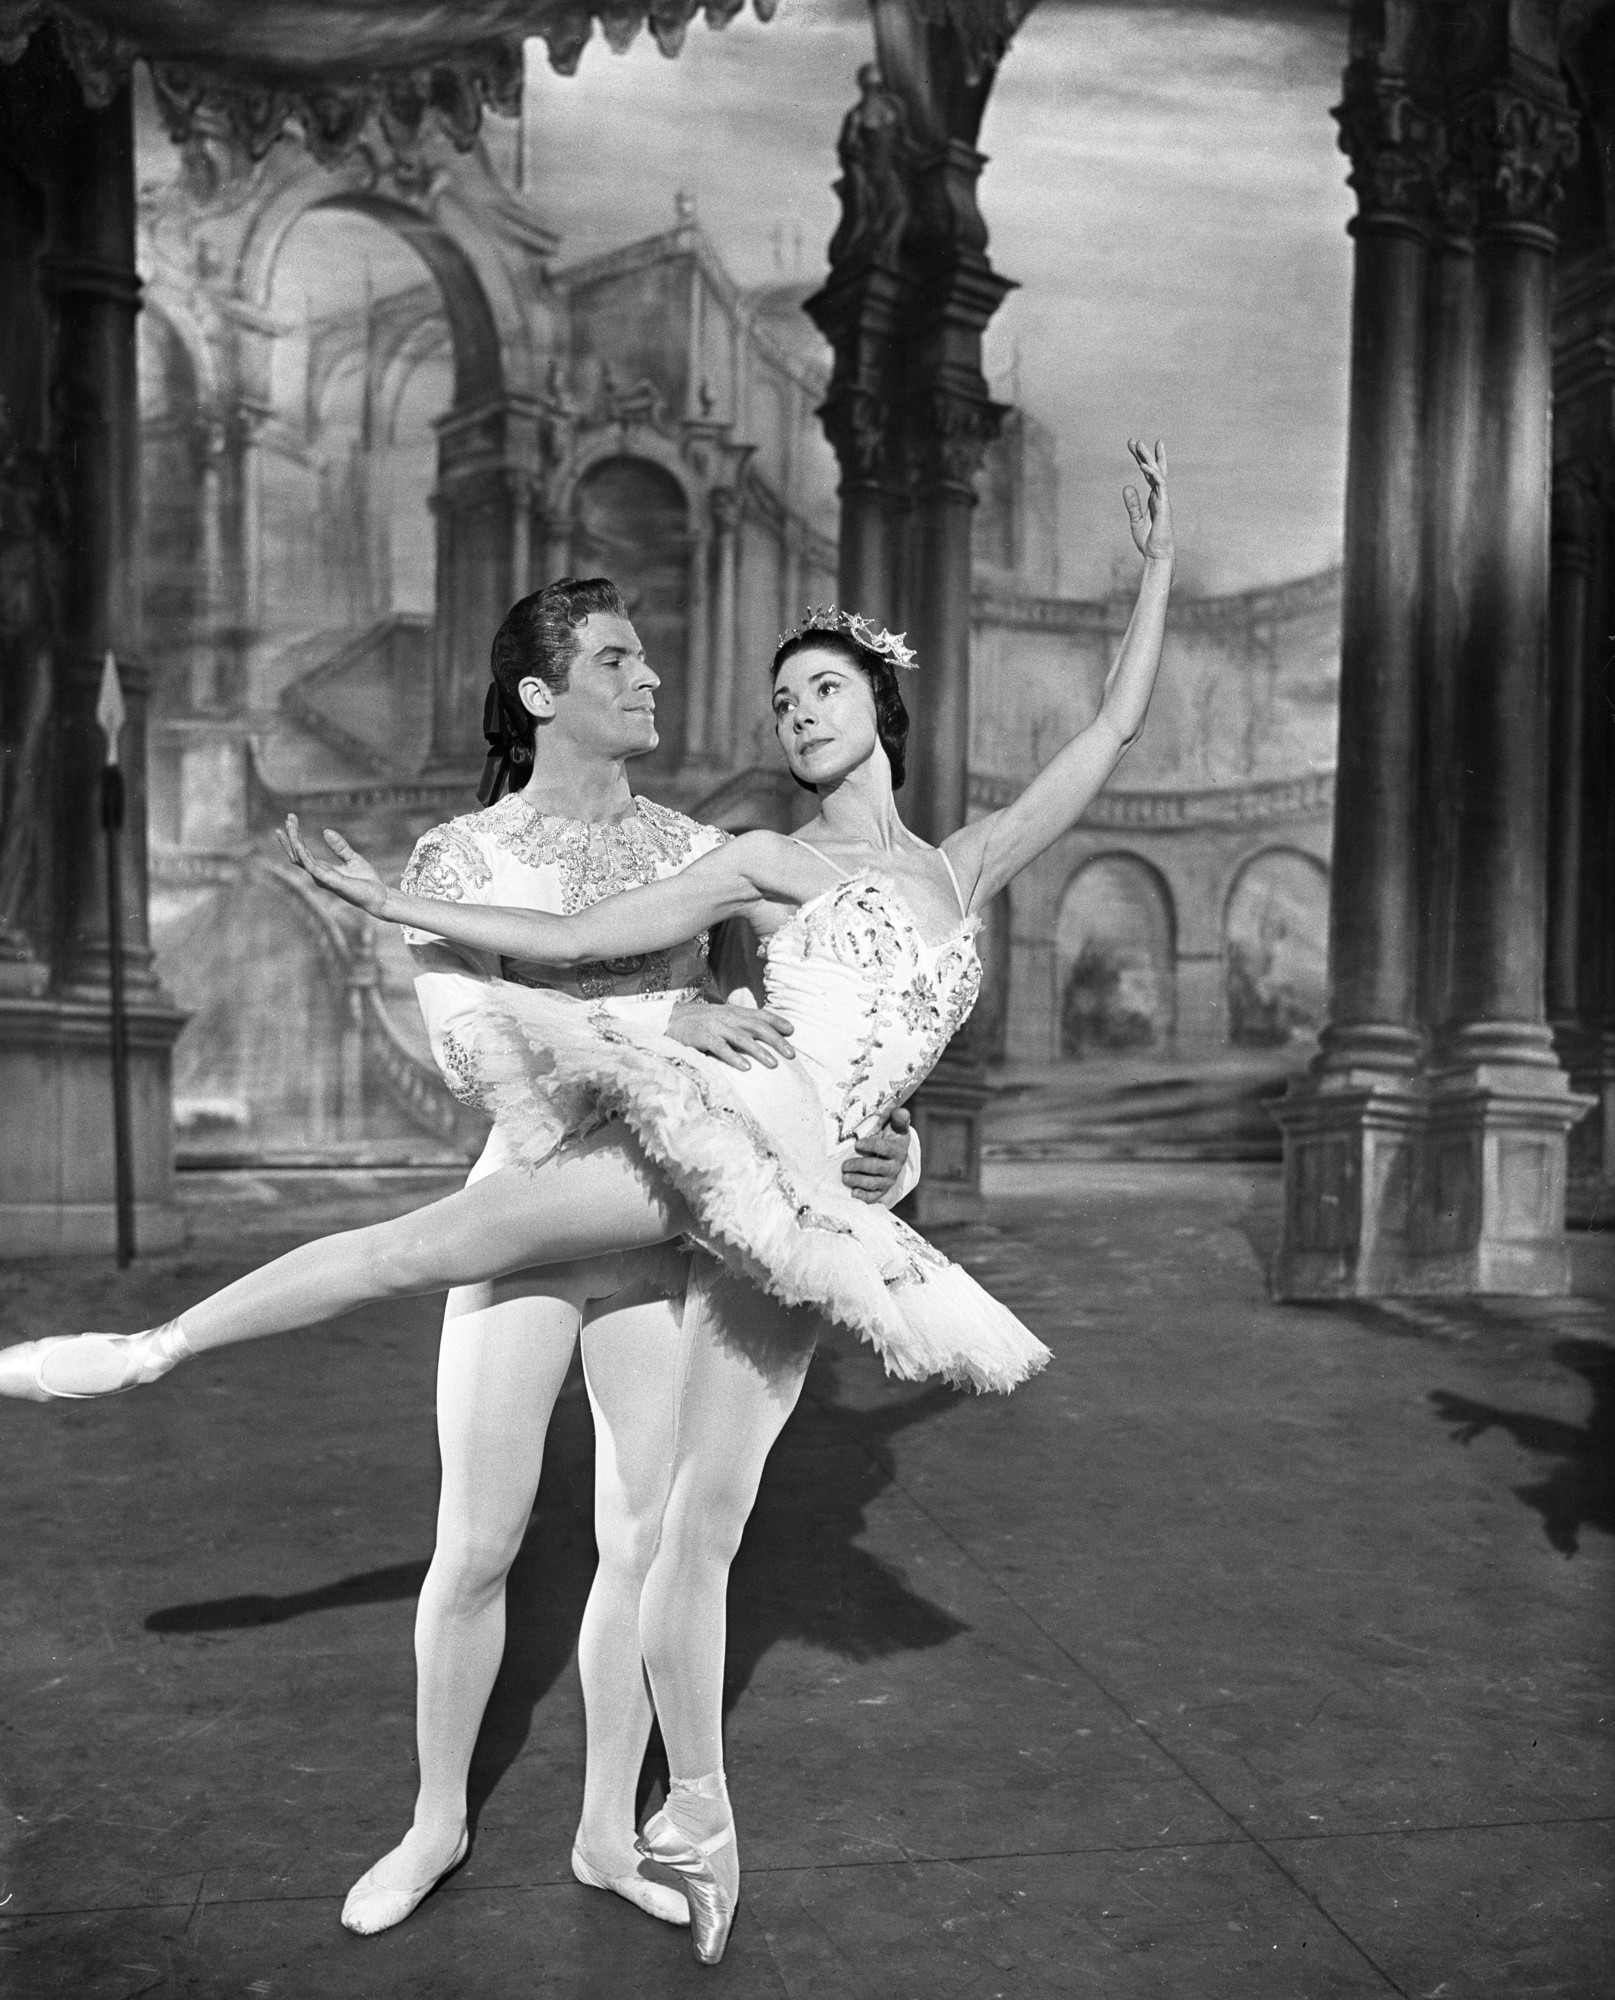 Margot Fonteyn and Michael Somes in The Sleeping Beauty (1959)